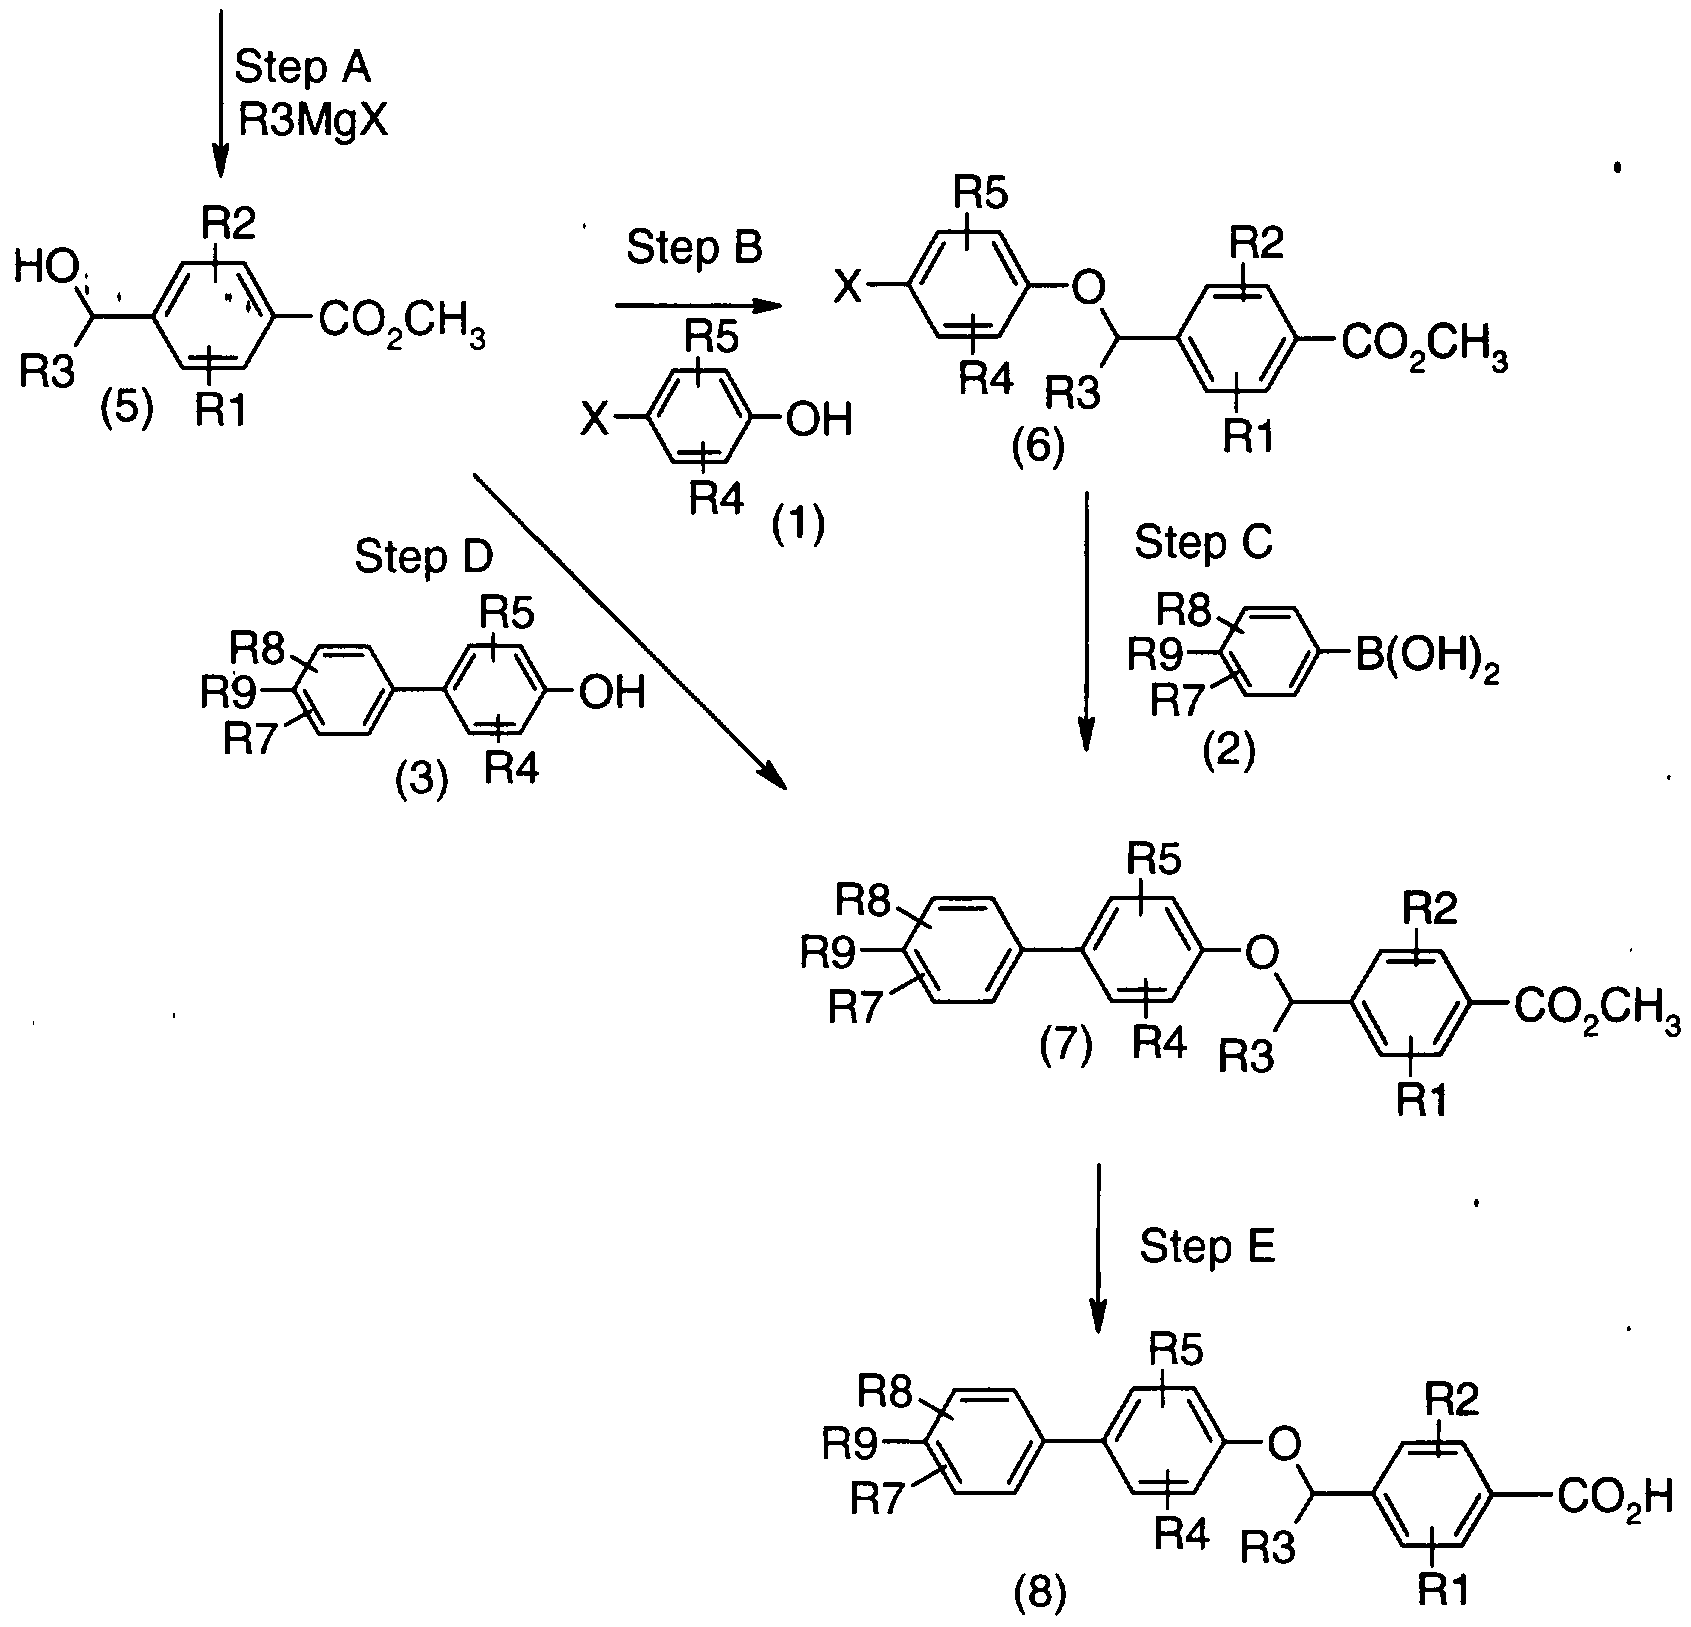 grignard synthesis of benzoic acid from bromobenzene Addition of grignard reagents to aryl acid chlorides: an efficient synthesis of aryl ketones x-j wang, l zhang, x sun,  synthesis, 2002, 1115-1120.